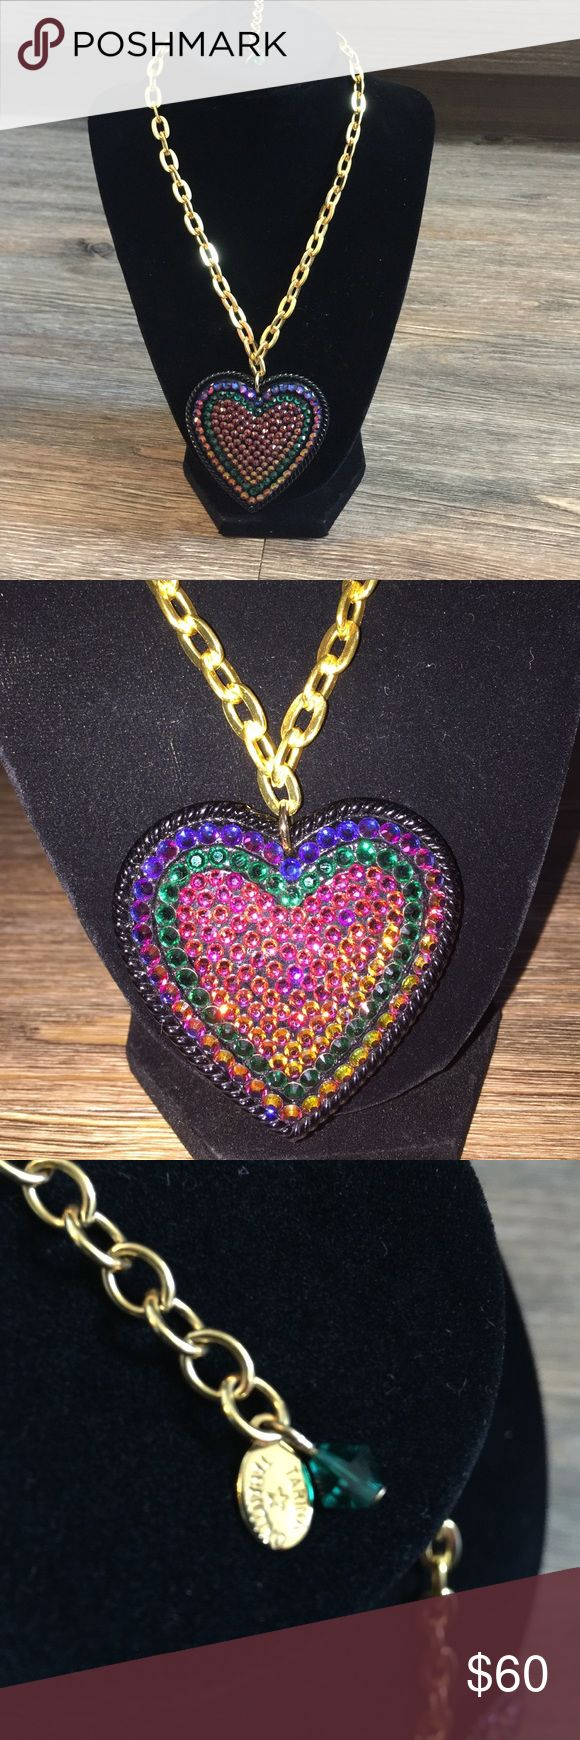 Tarina Tarantino crystal heart necklace multi opal Authentic Tarina Tarantino crystal heart necklace with gold chain in multi color crystals opal I think the stone is gorgeous would dress and plain thing up brand new no missing stones Tarina Tarantino Jewelry Necklaces